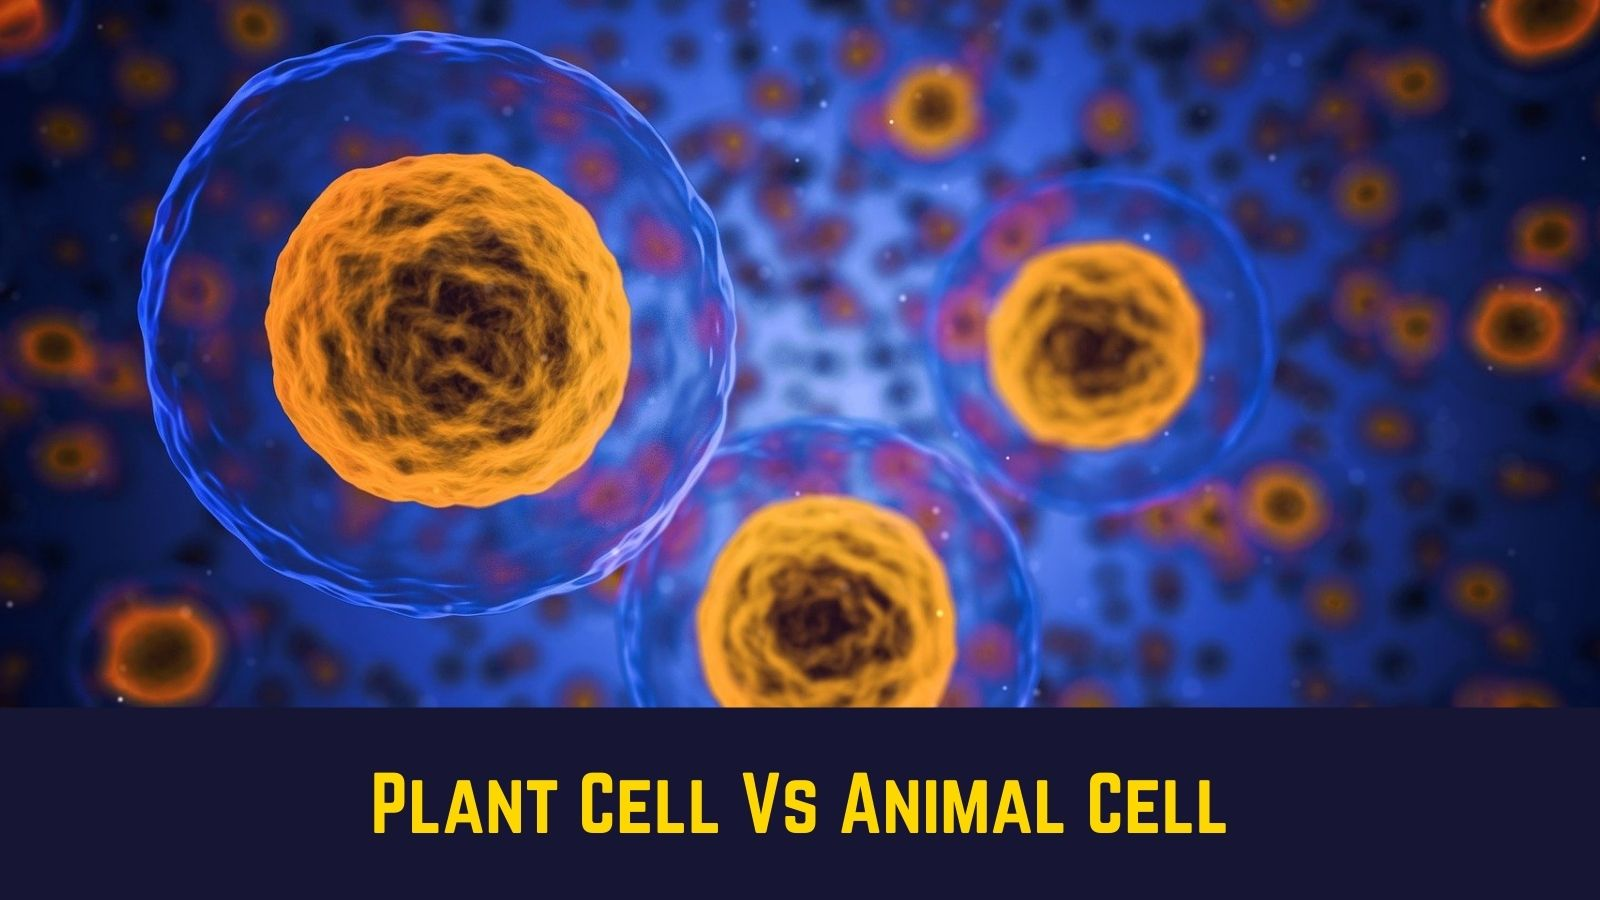 Compare and Contrast Plant Cell Vs Animal Cell